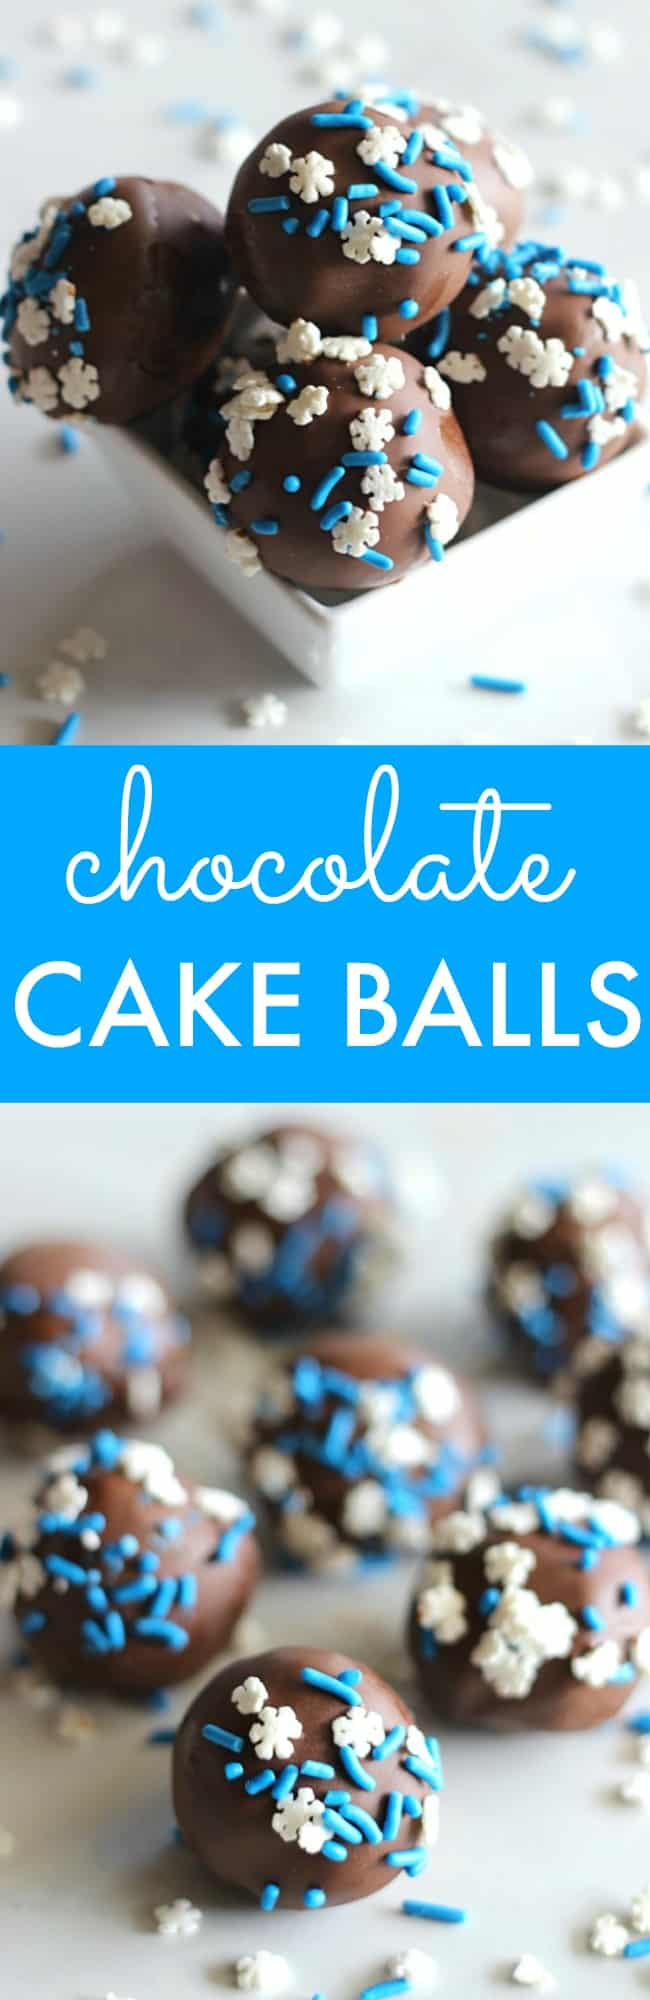 Chocolate Cake Balls Recipe - Belle of the Kitchen